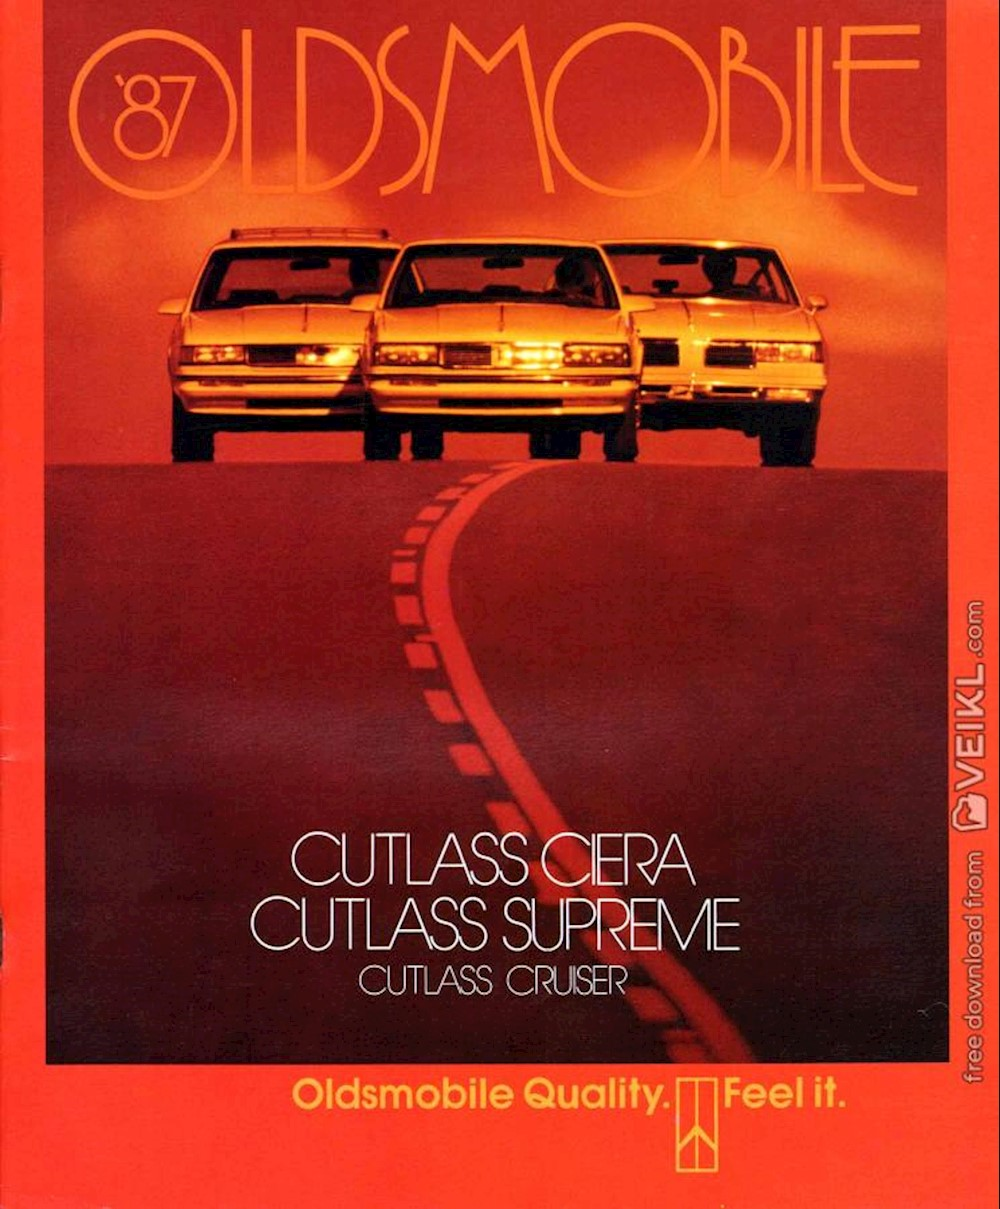 Oldsmobile Cutlass range Brochure 1987 EN